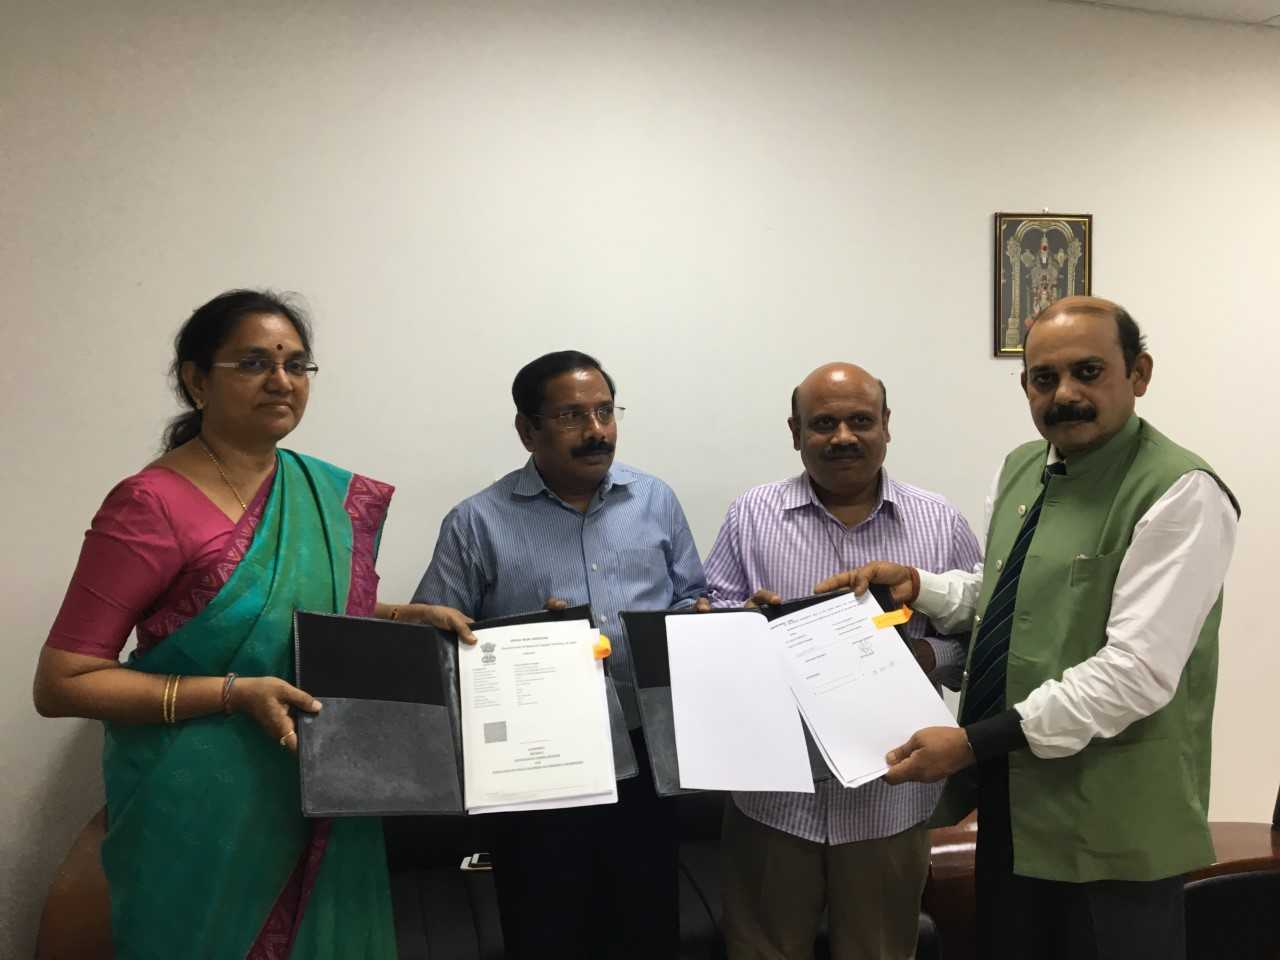 XLr8AP Phase 2 Agreement Signing Ceremony between FICCI and Andhra Pradesh Innovation Society, Govt of Andhra Pradesh